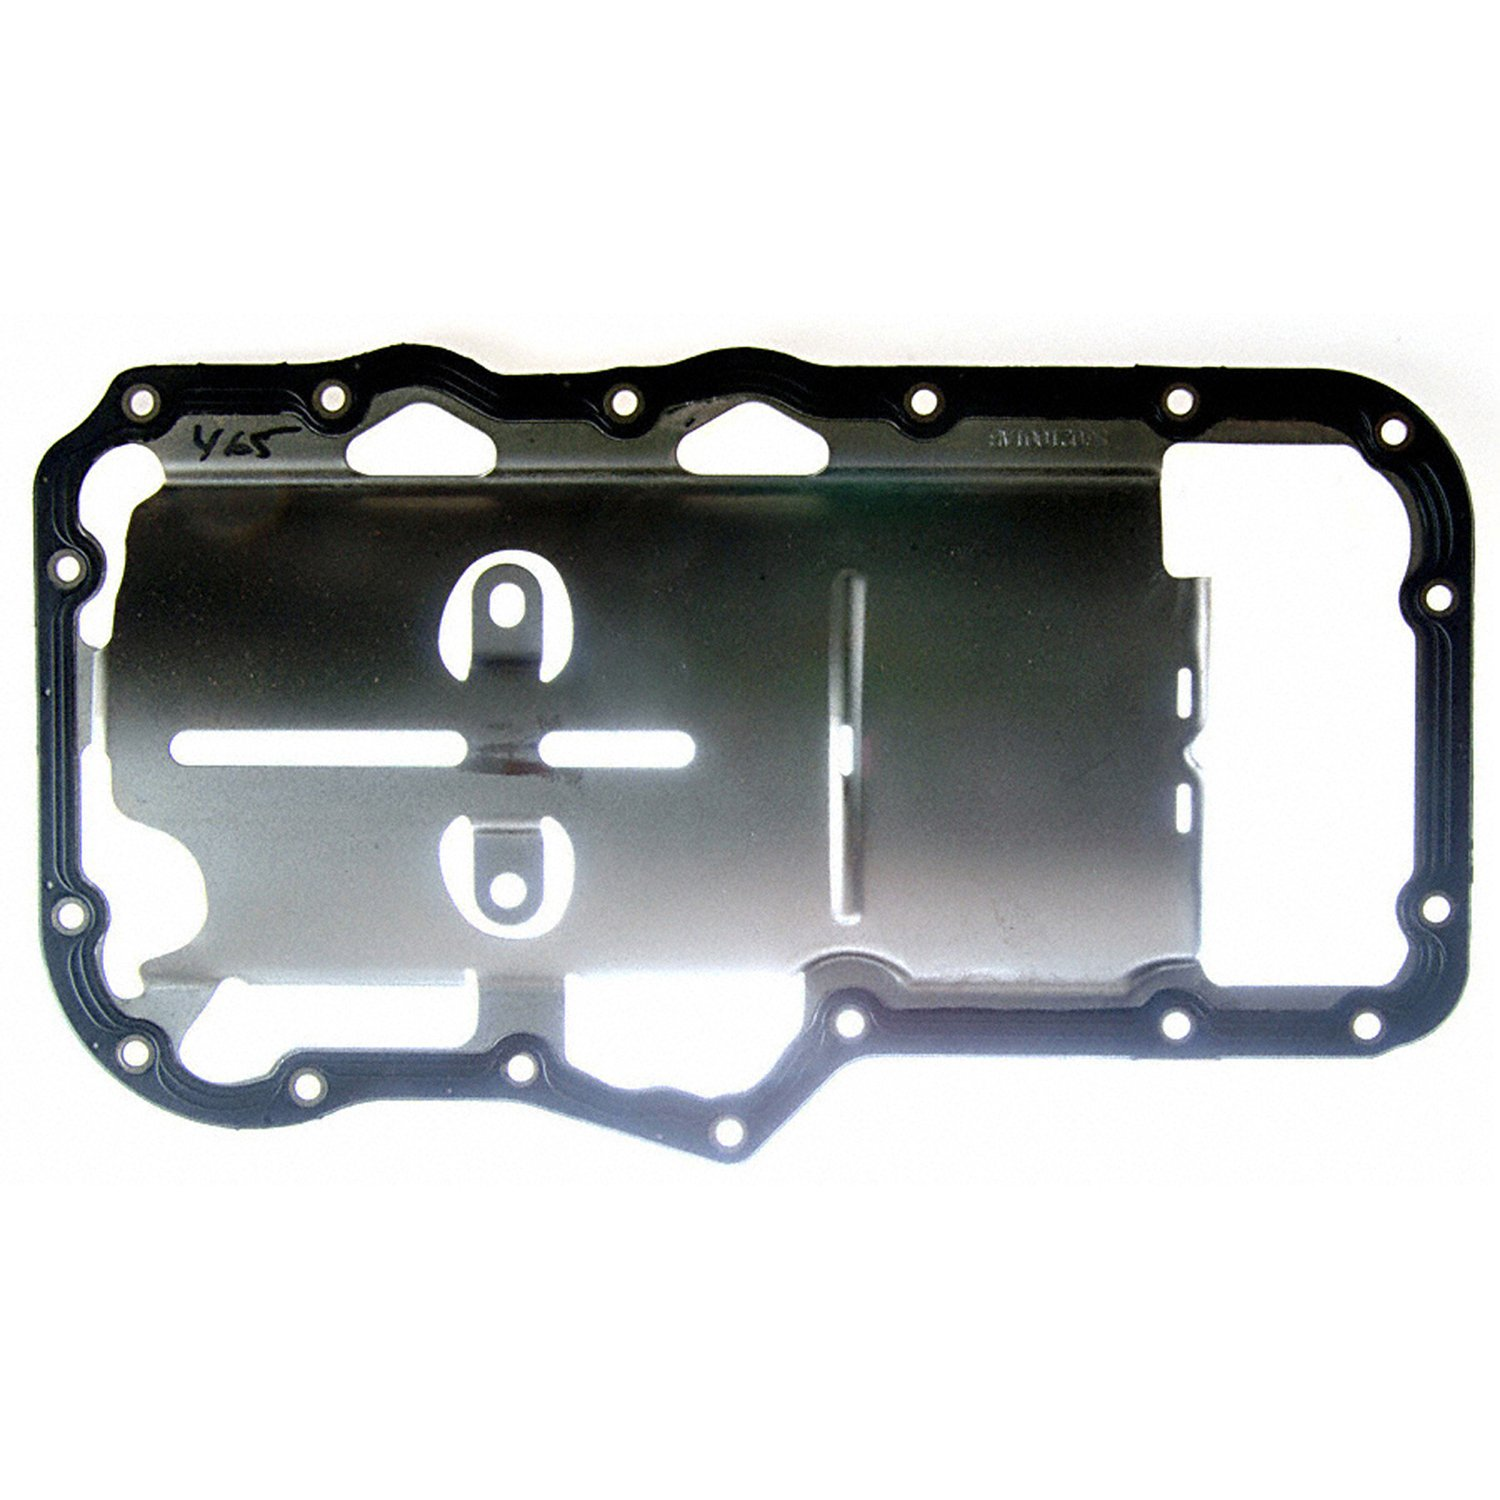 MAHLE Engine Oil Pan Gasket Upper in 2019 Products t